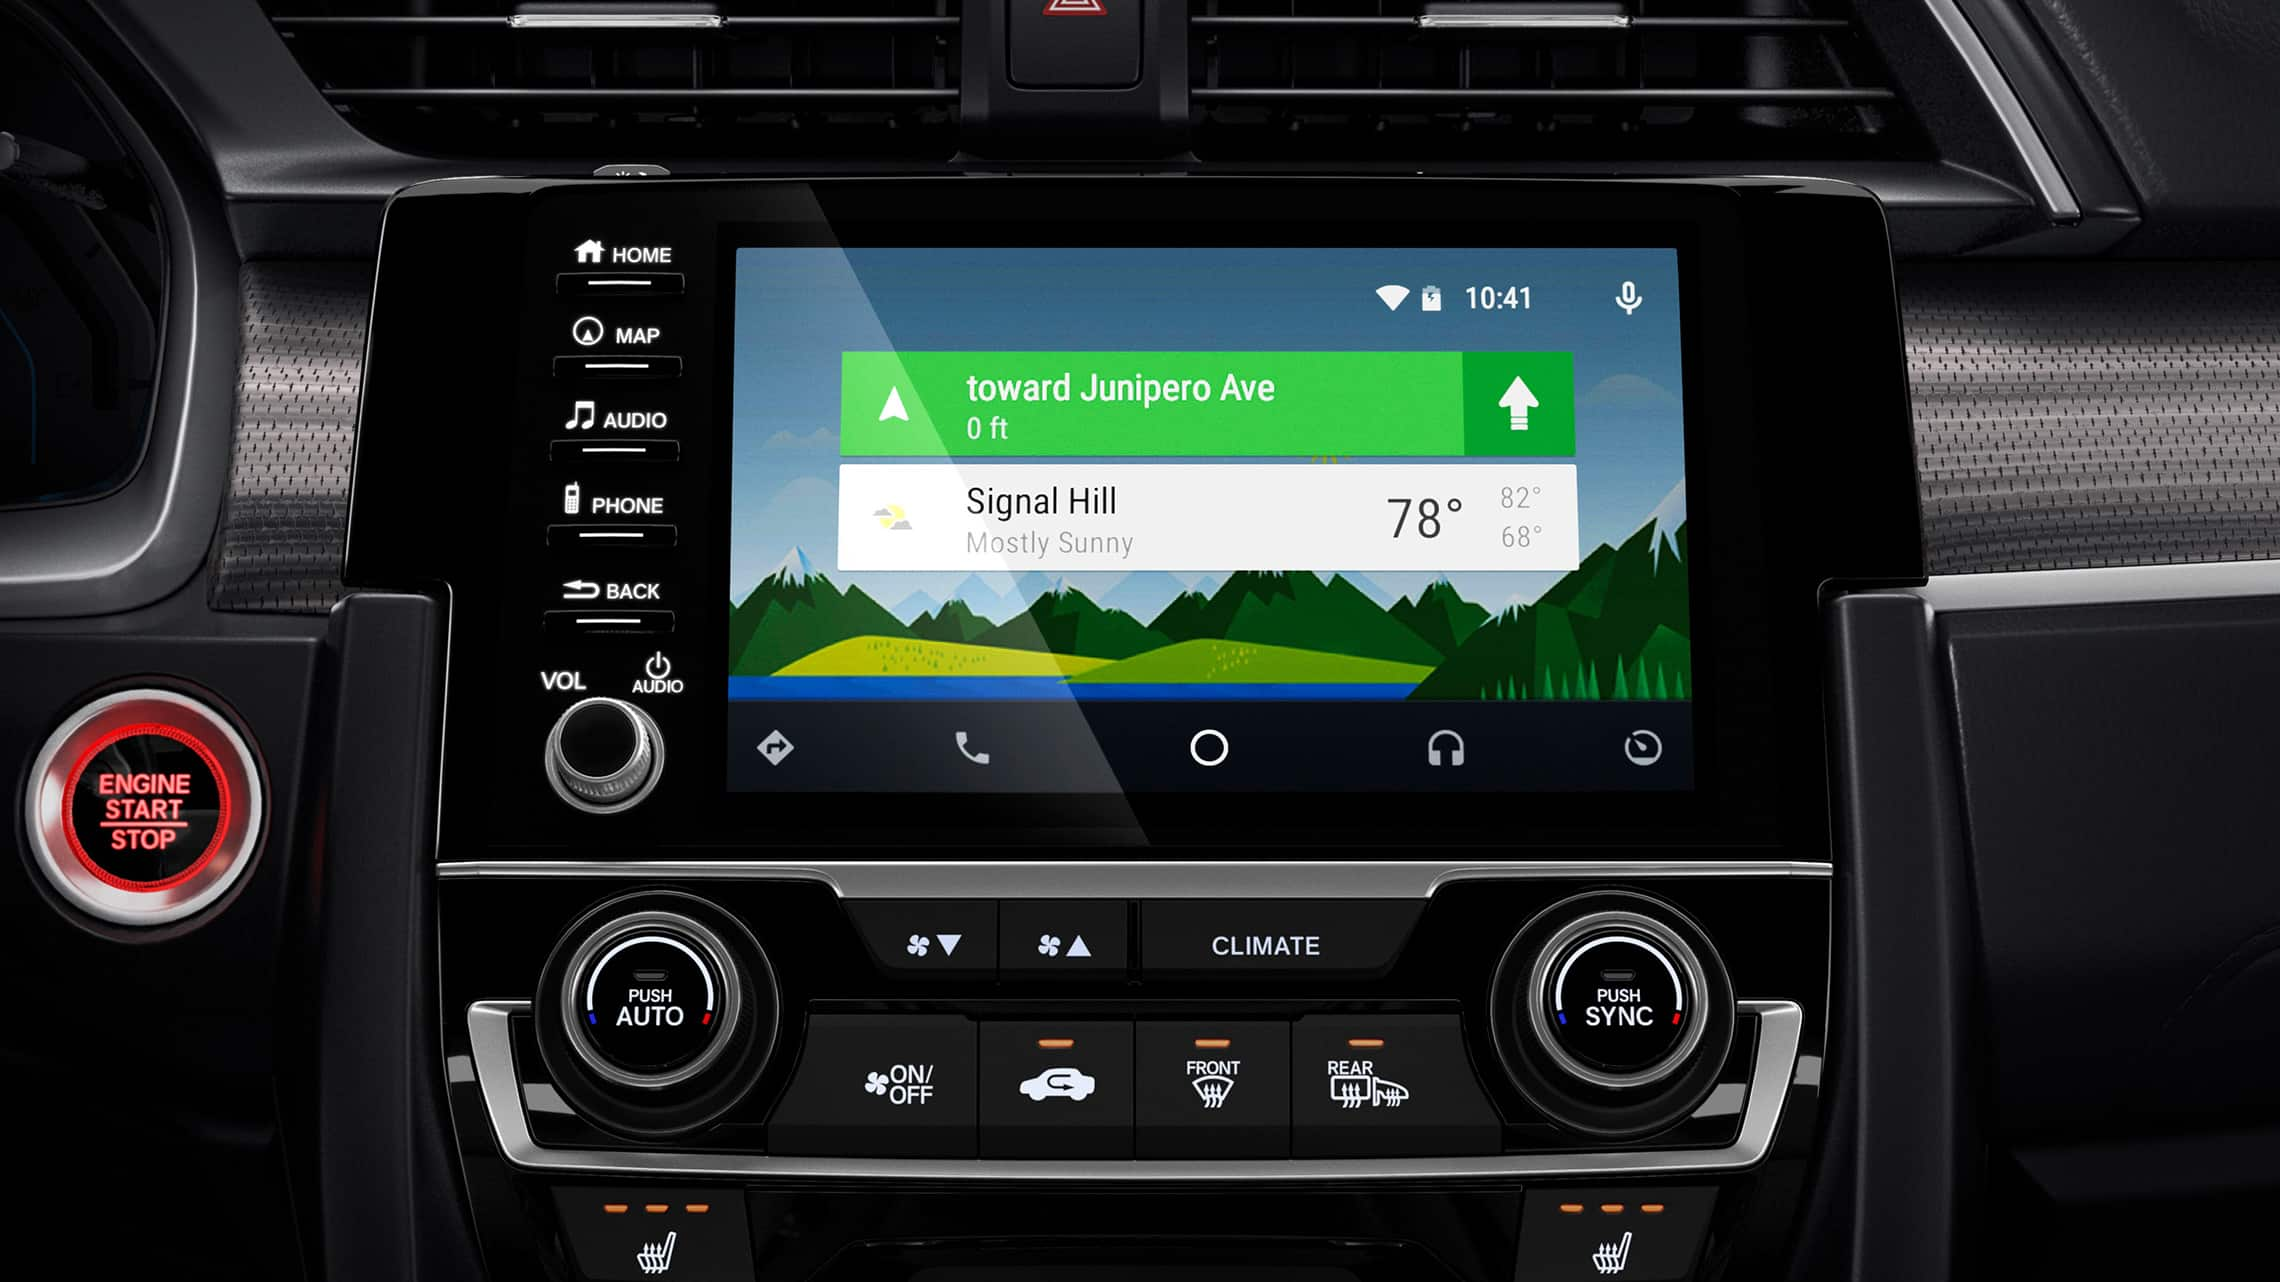 Android Auto™ integration detail on Display Audio touchscreen in the 2020 Honda Civic Coupe.